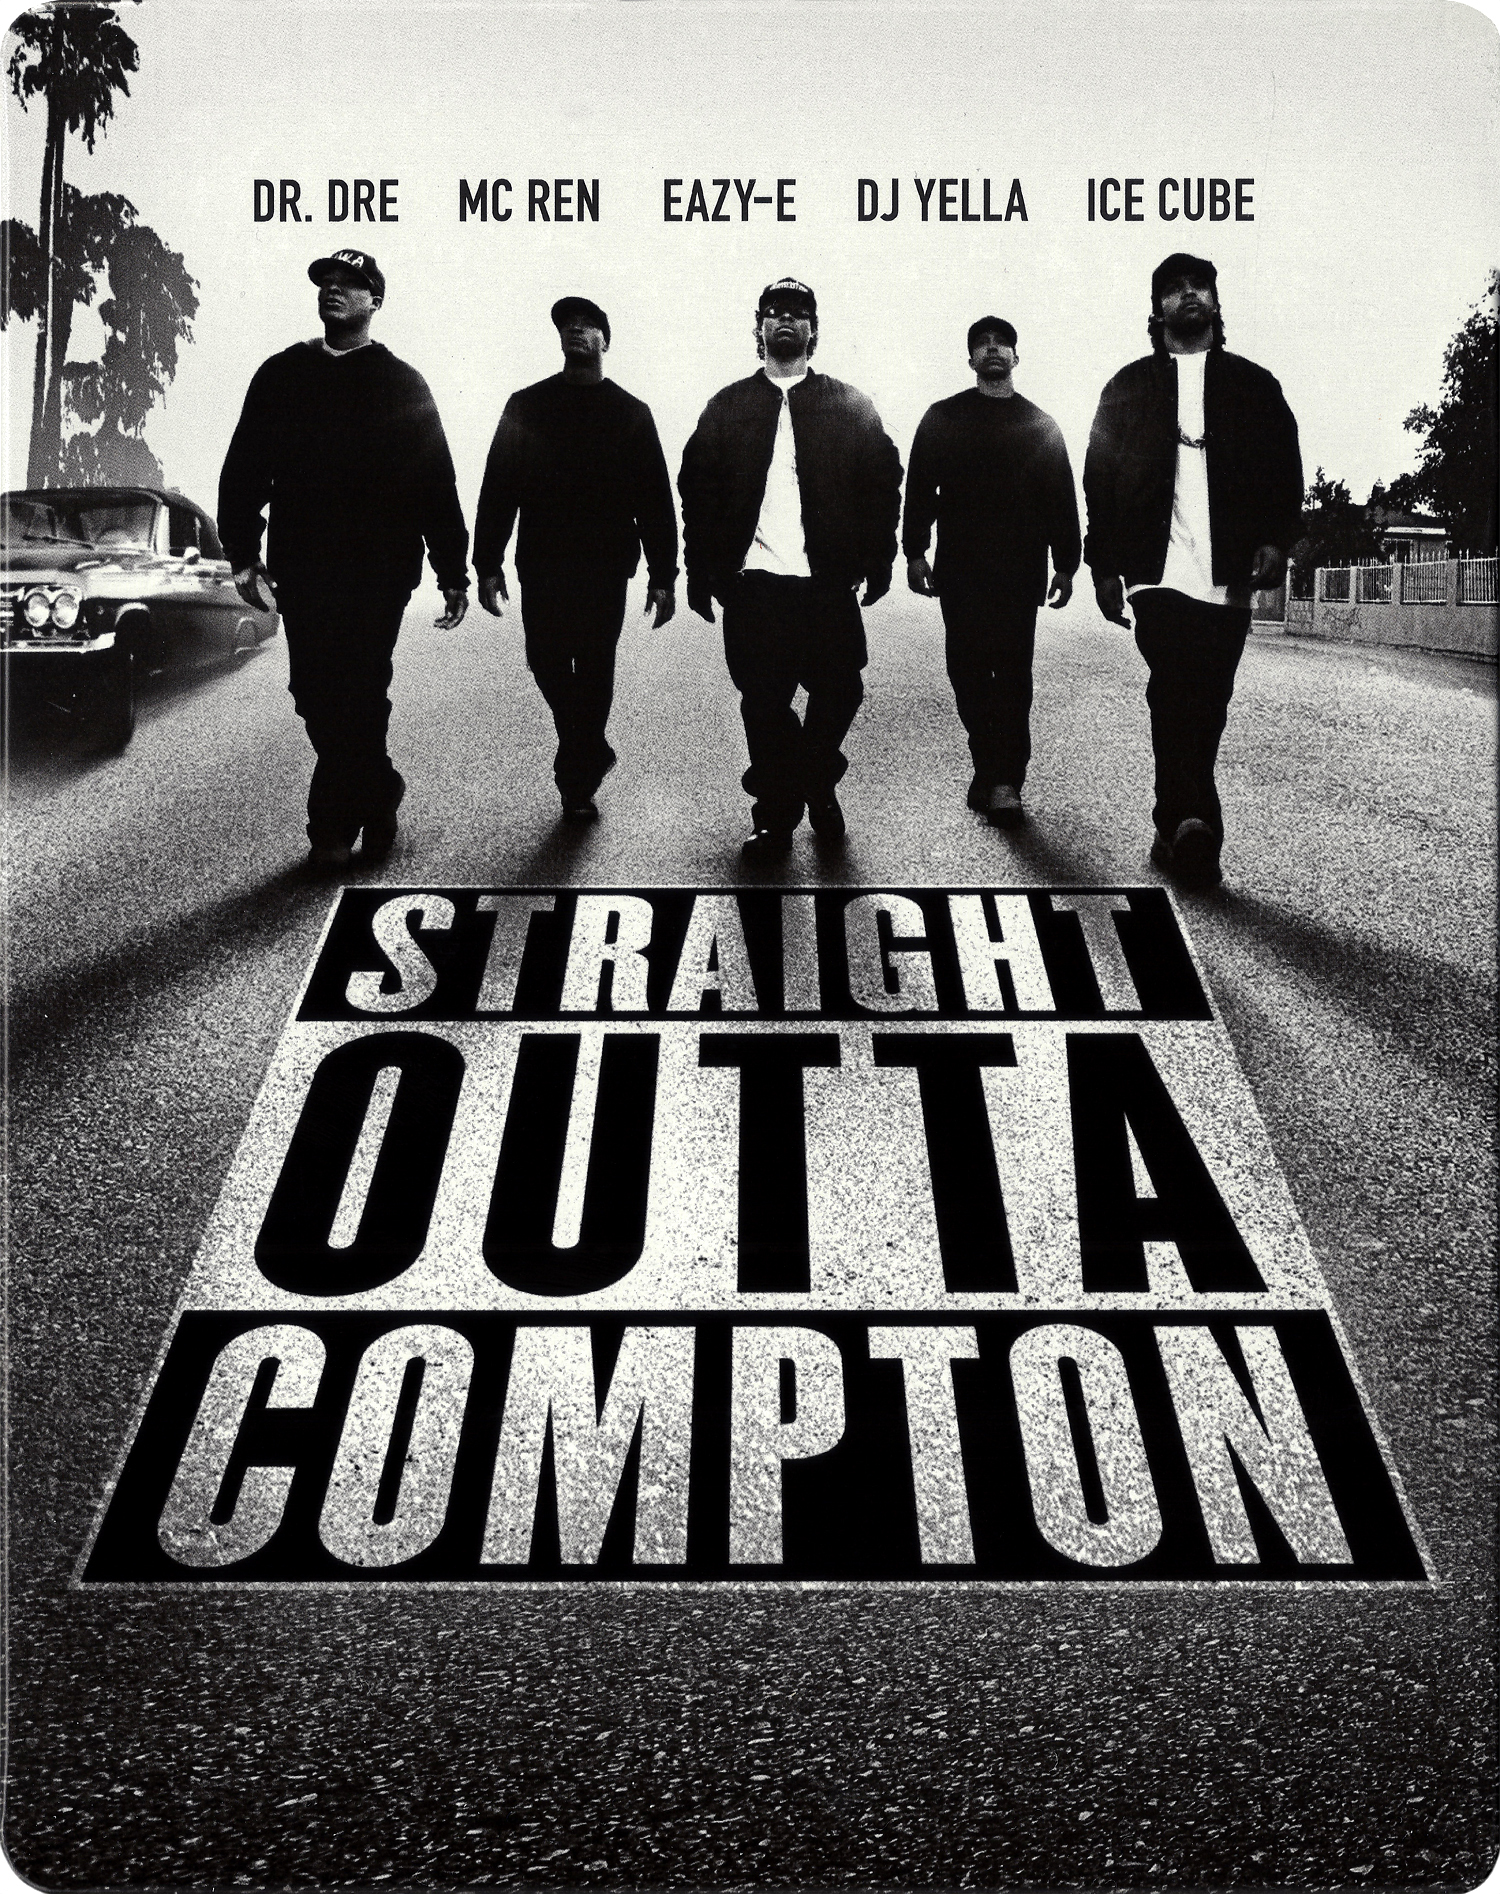 Clinton Street Resistance presents STRAIGHT OUTTA COMPTON ...